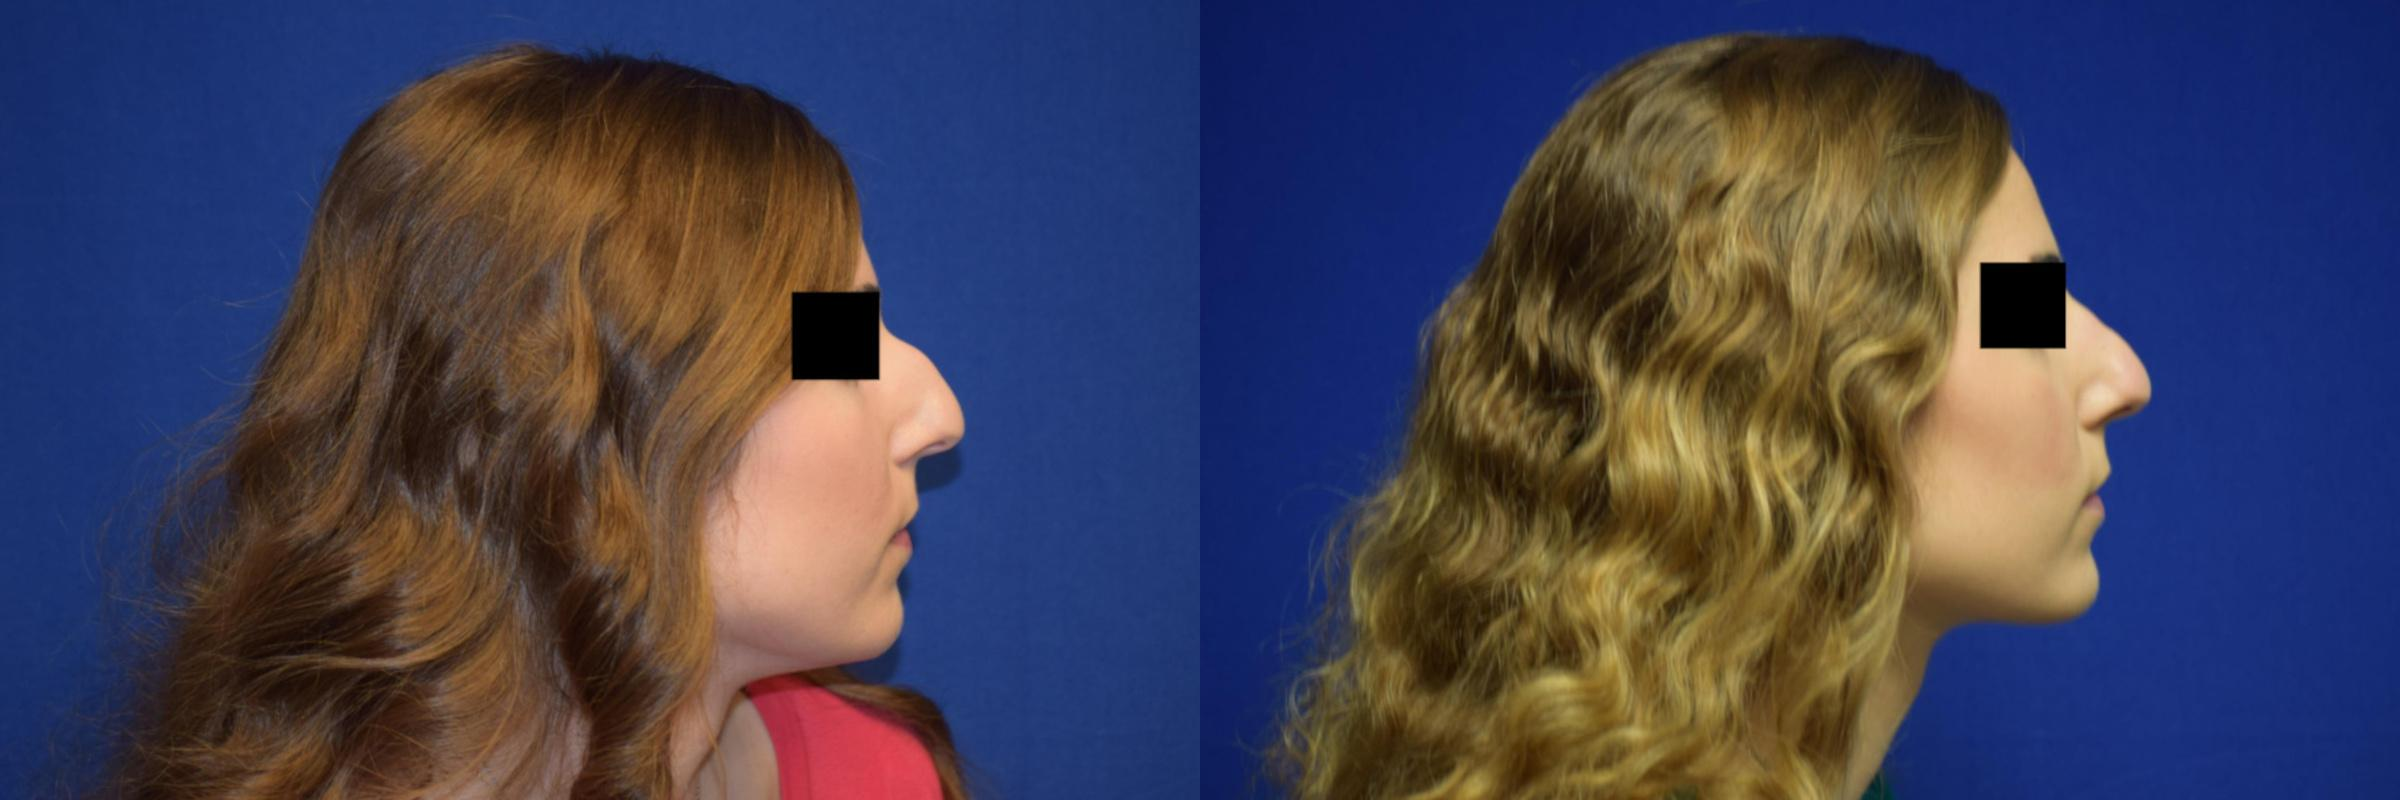 Rhinoplasty Before & After Photos | Ahmed Sufyan, MD